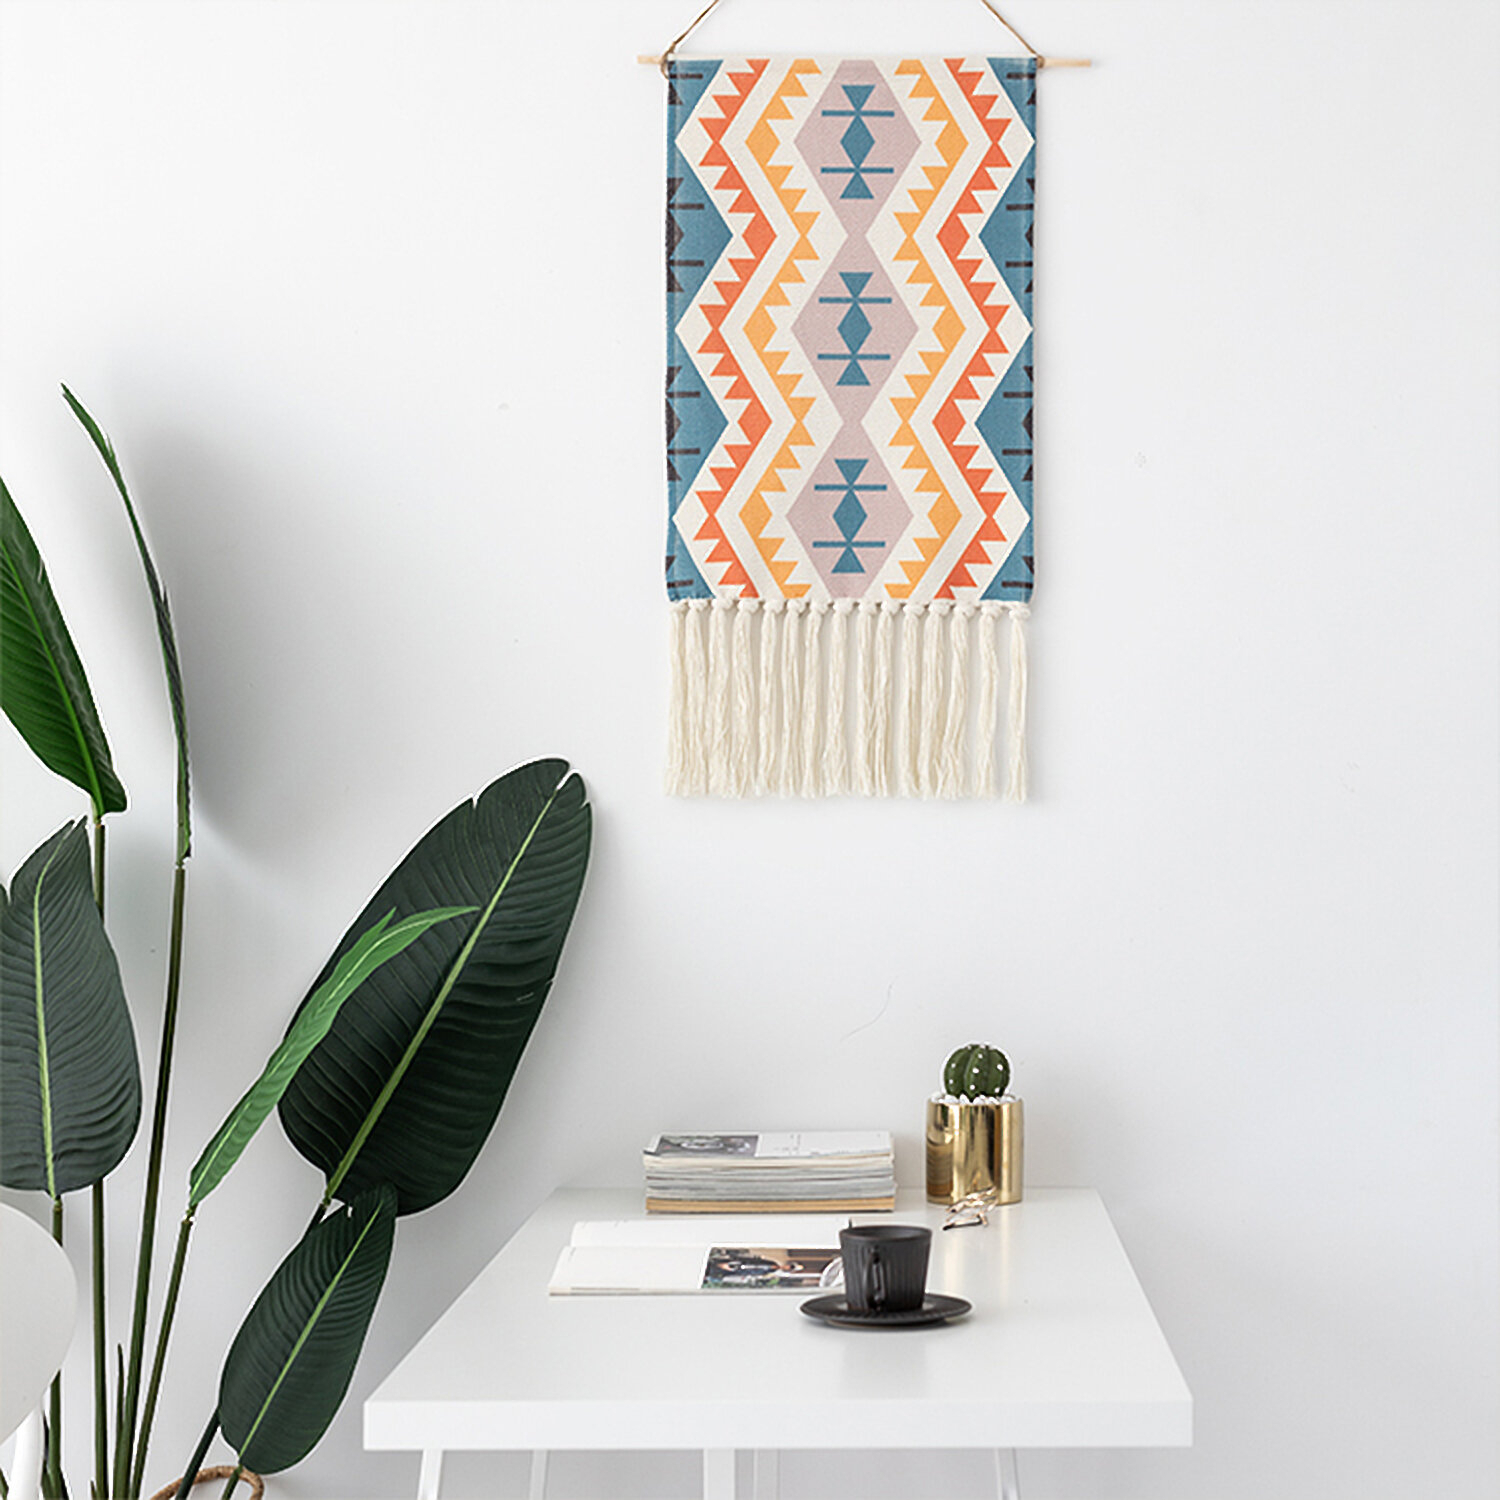 Traditional Boho Woven Tapestry Wall Hanging Within Newest Blended Fabric Saber Wall Hangings With Rod (View 9 of 20)